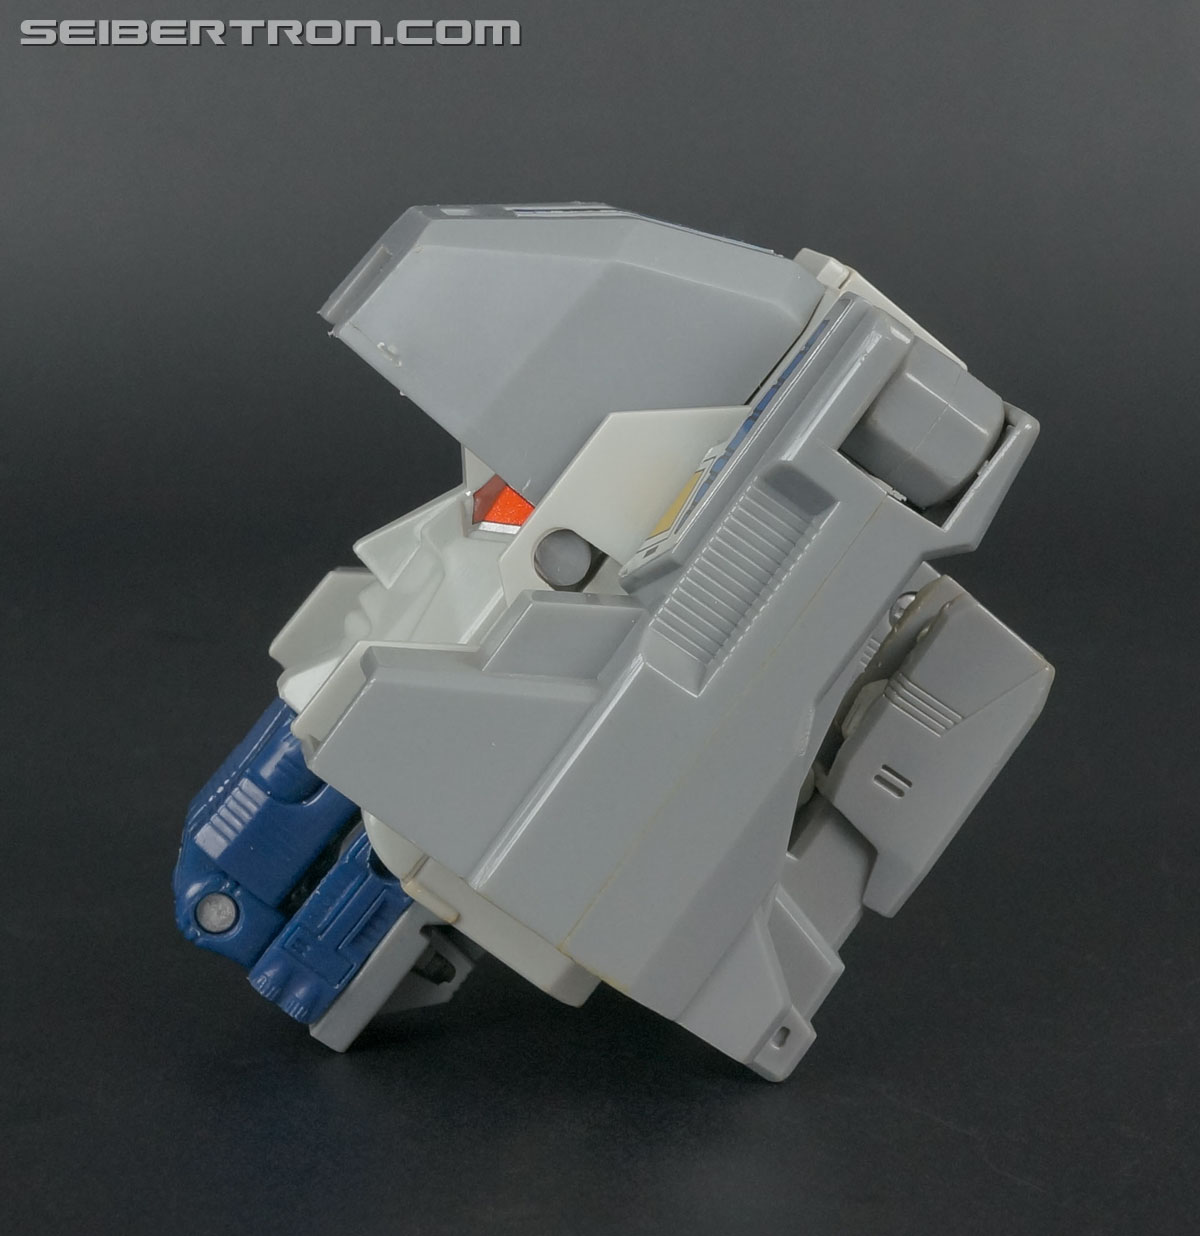 Transformers G1 1987 Cerebros (Fortress) (Image #129 of 146)